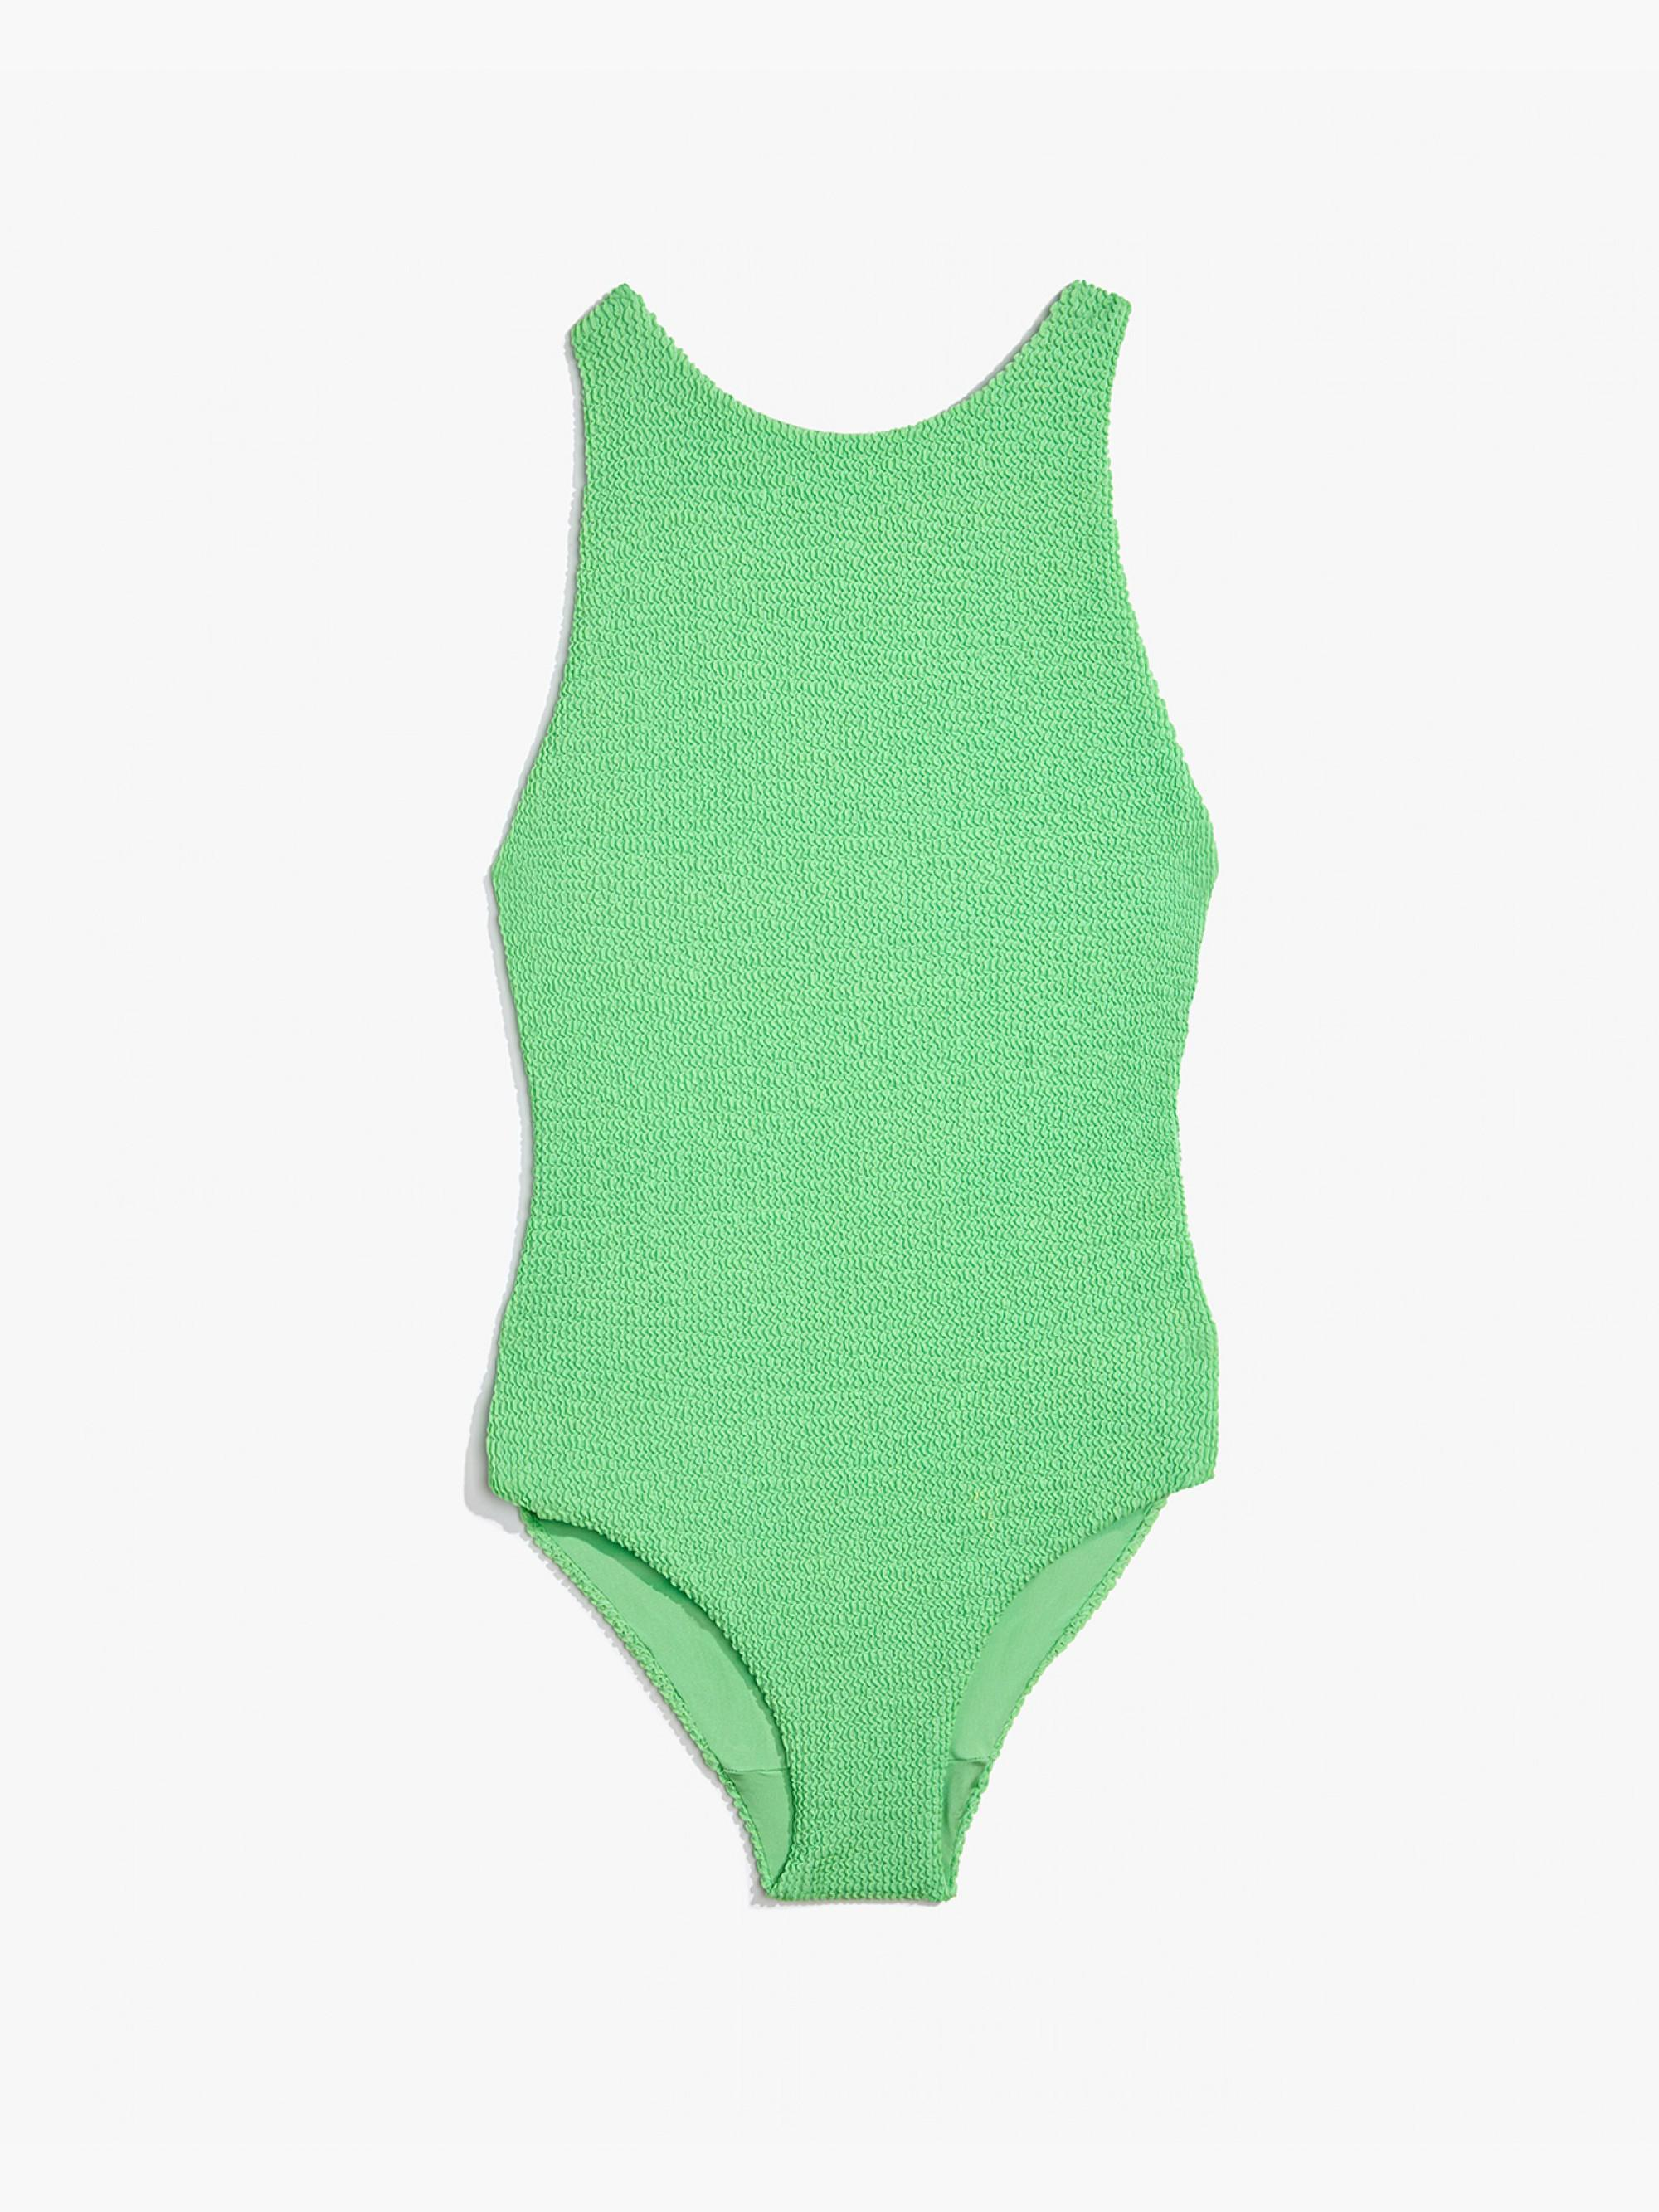 f67d5ba341220 Onia Yvette Smocking One Piece Swimsuit in Green - Lyst